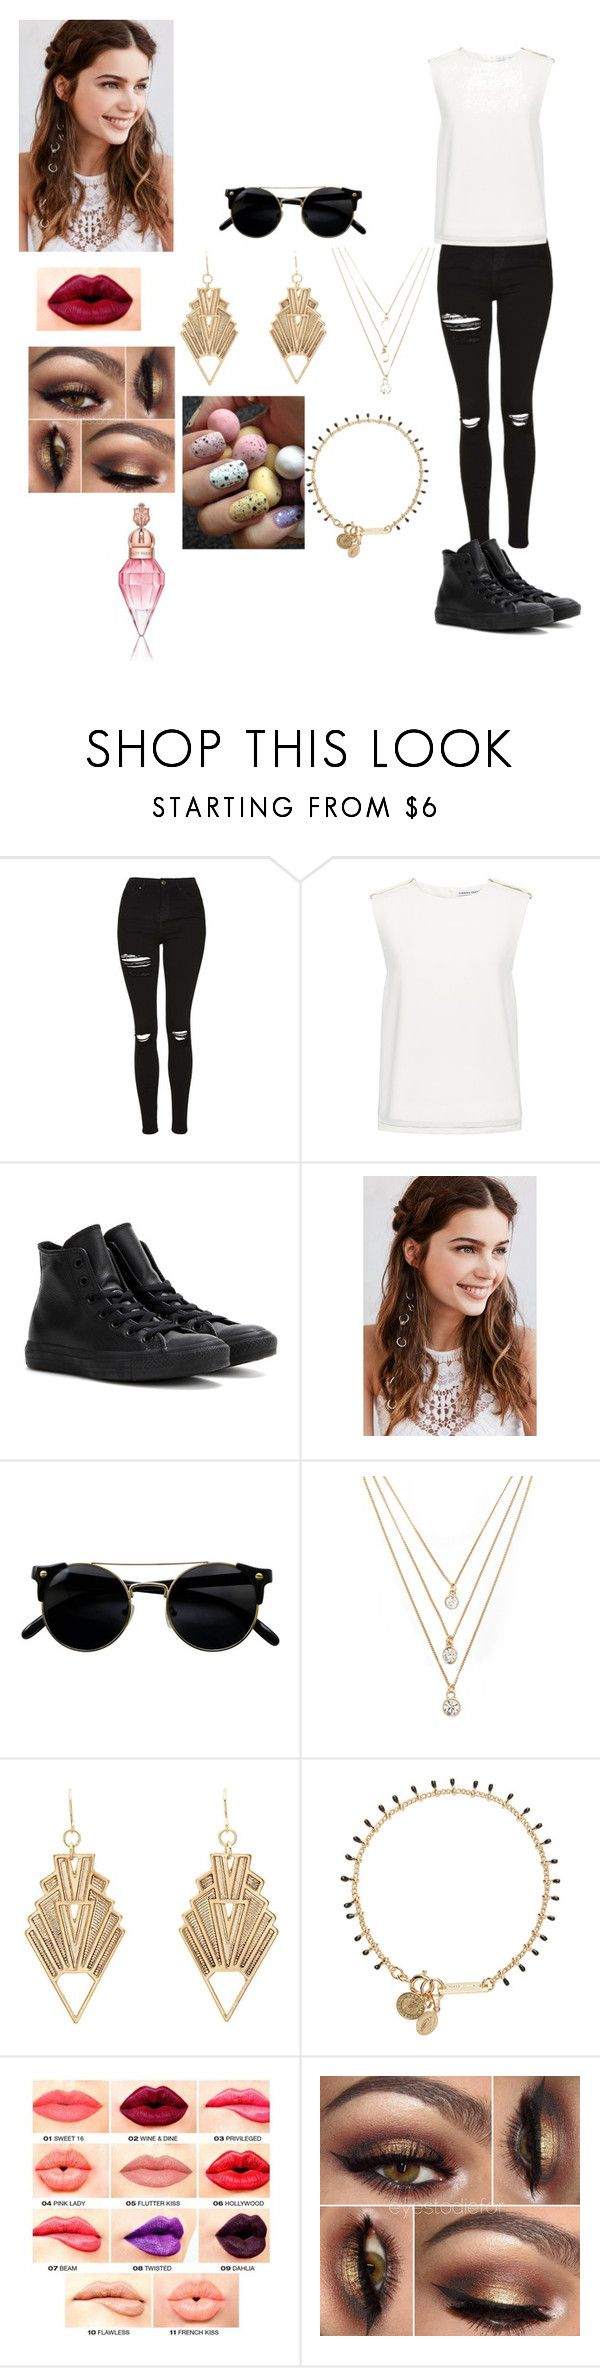 """Laura's outfit for day in Montevideo, Uruguay"" by onedirectionforever1297 on Polyvore featuring Topshop, Finders Keepers, Converse, REGALROSE, Forever 21, Charlotte Russe, Isabel Marant and NYX"